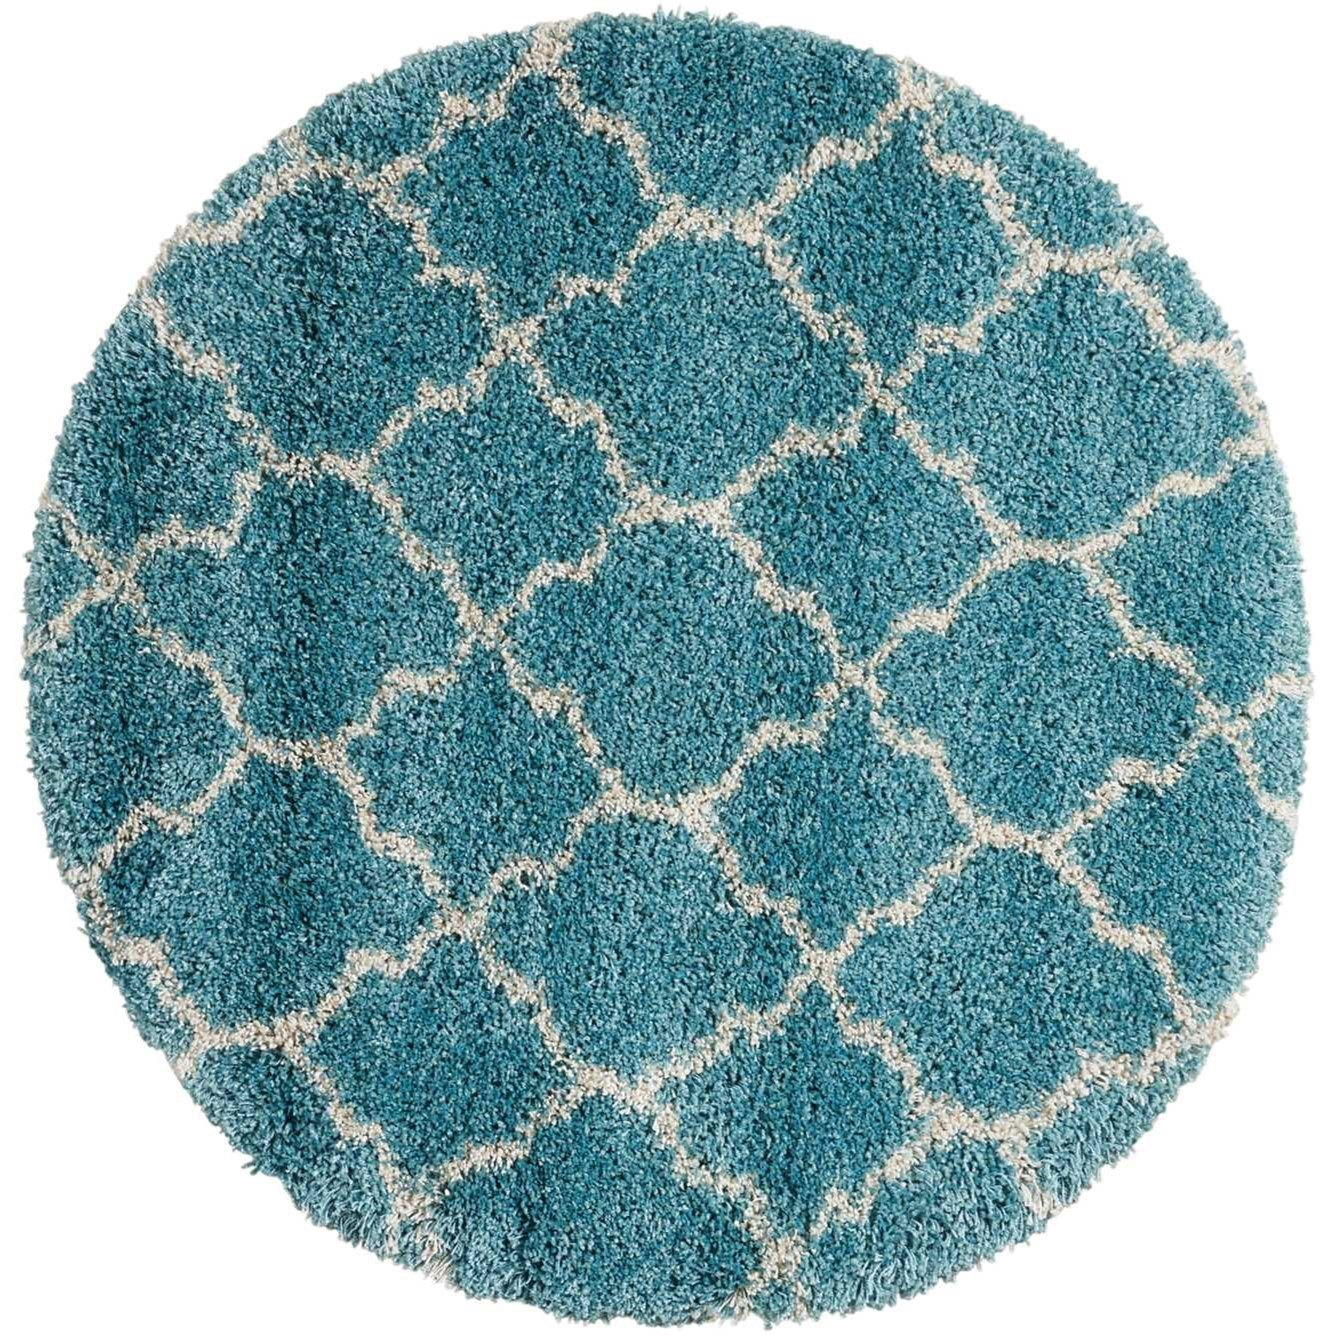 """Amore 3'11"""" x 3'11"""" Aqua Round Rug by Nourison at Home Collections Furniture"""